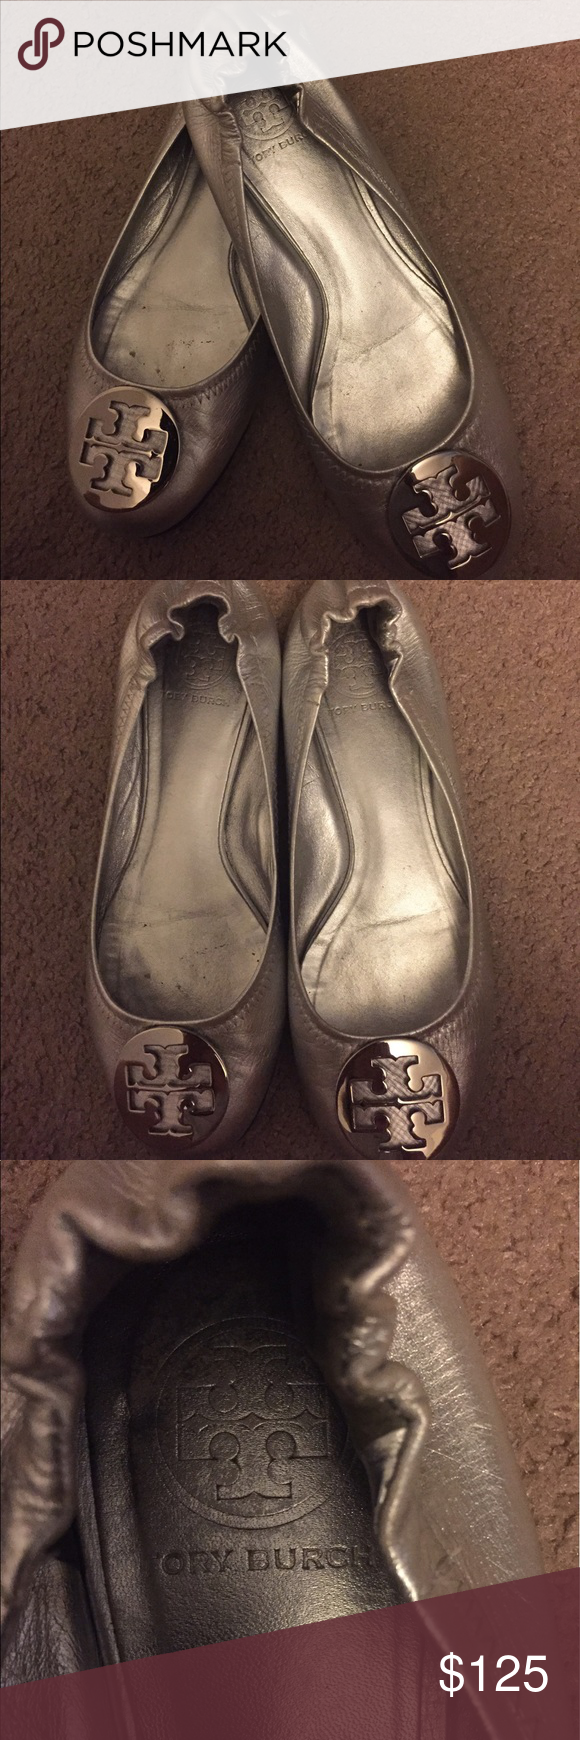 Tory Burch Reva Flats in Metallic Silver Well loved, hardly used and stored inside a shoe box Tory Burch Reva flats in metallic silver. Size: 8.5 Tory Burch Shoes Flats & Loafers